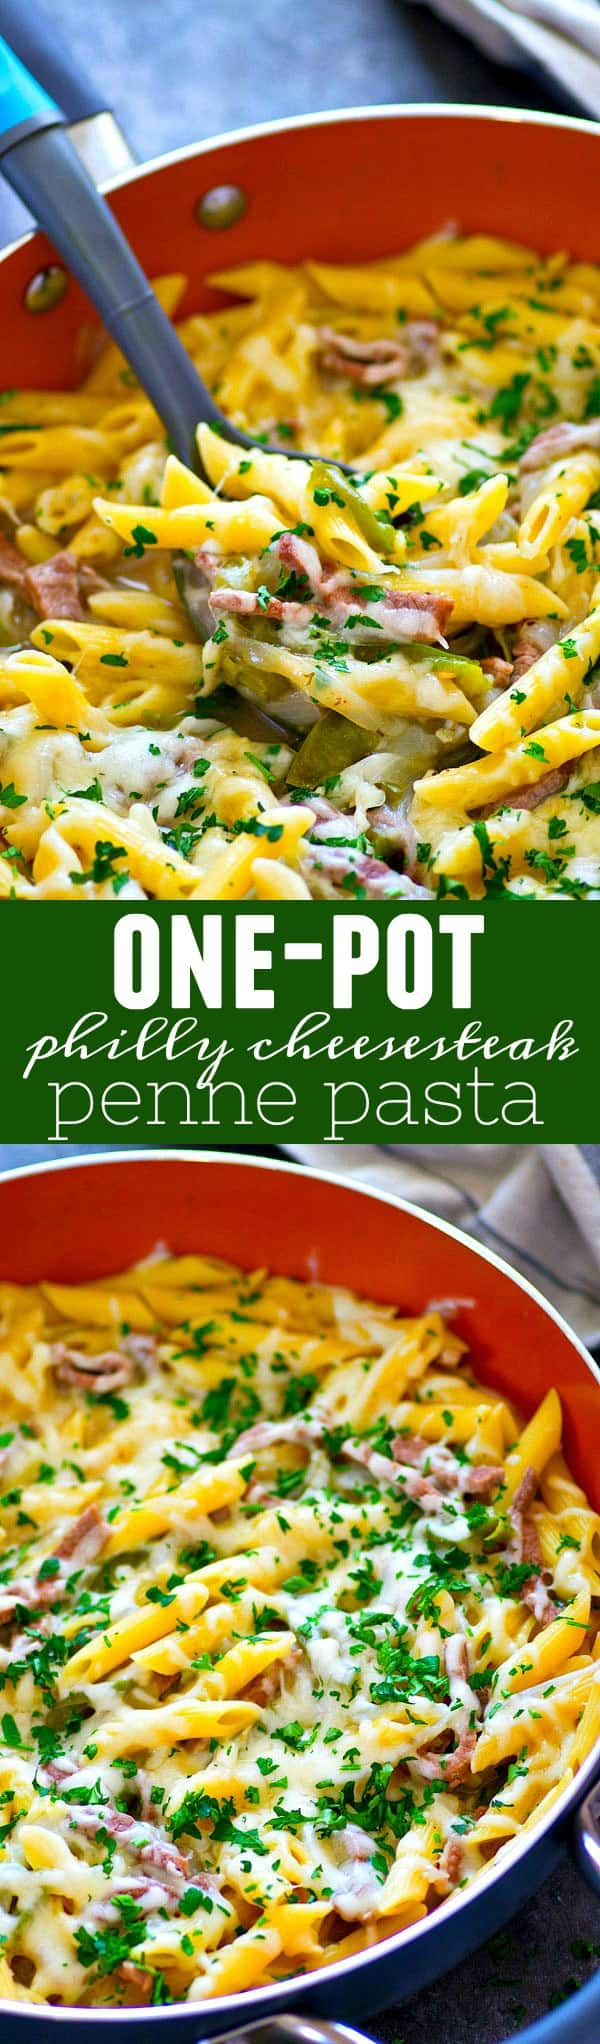 All the things you love about philly cheesesteaks are wrapped into this cozy one-pot philly cheesesteak penne pasta! It'll be on the dinner table in thirty minutes flat!